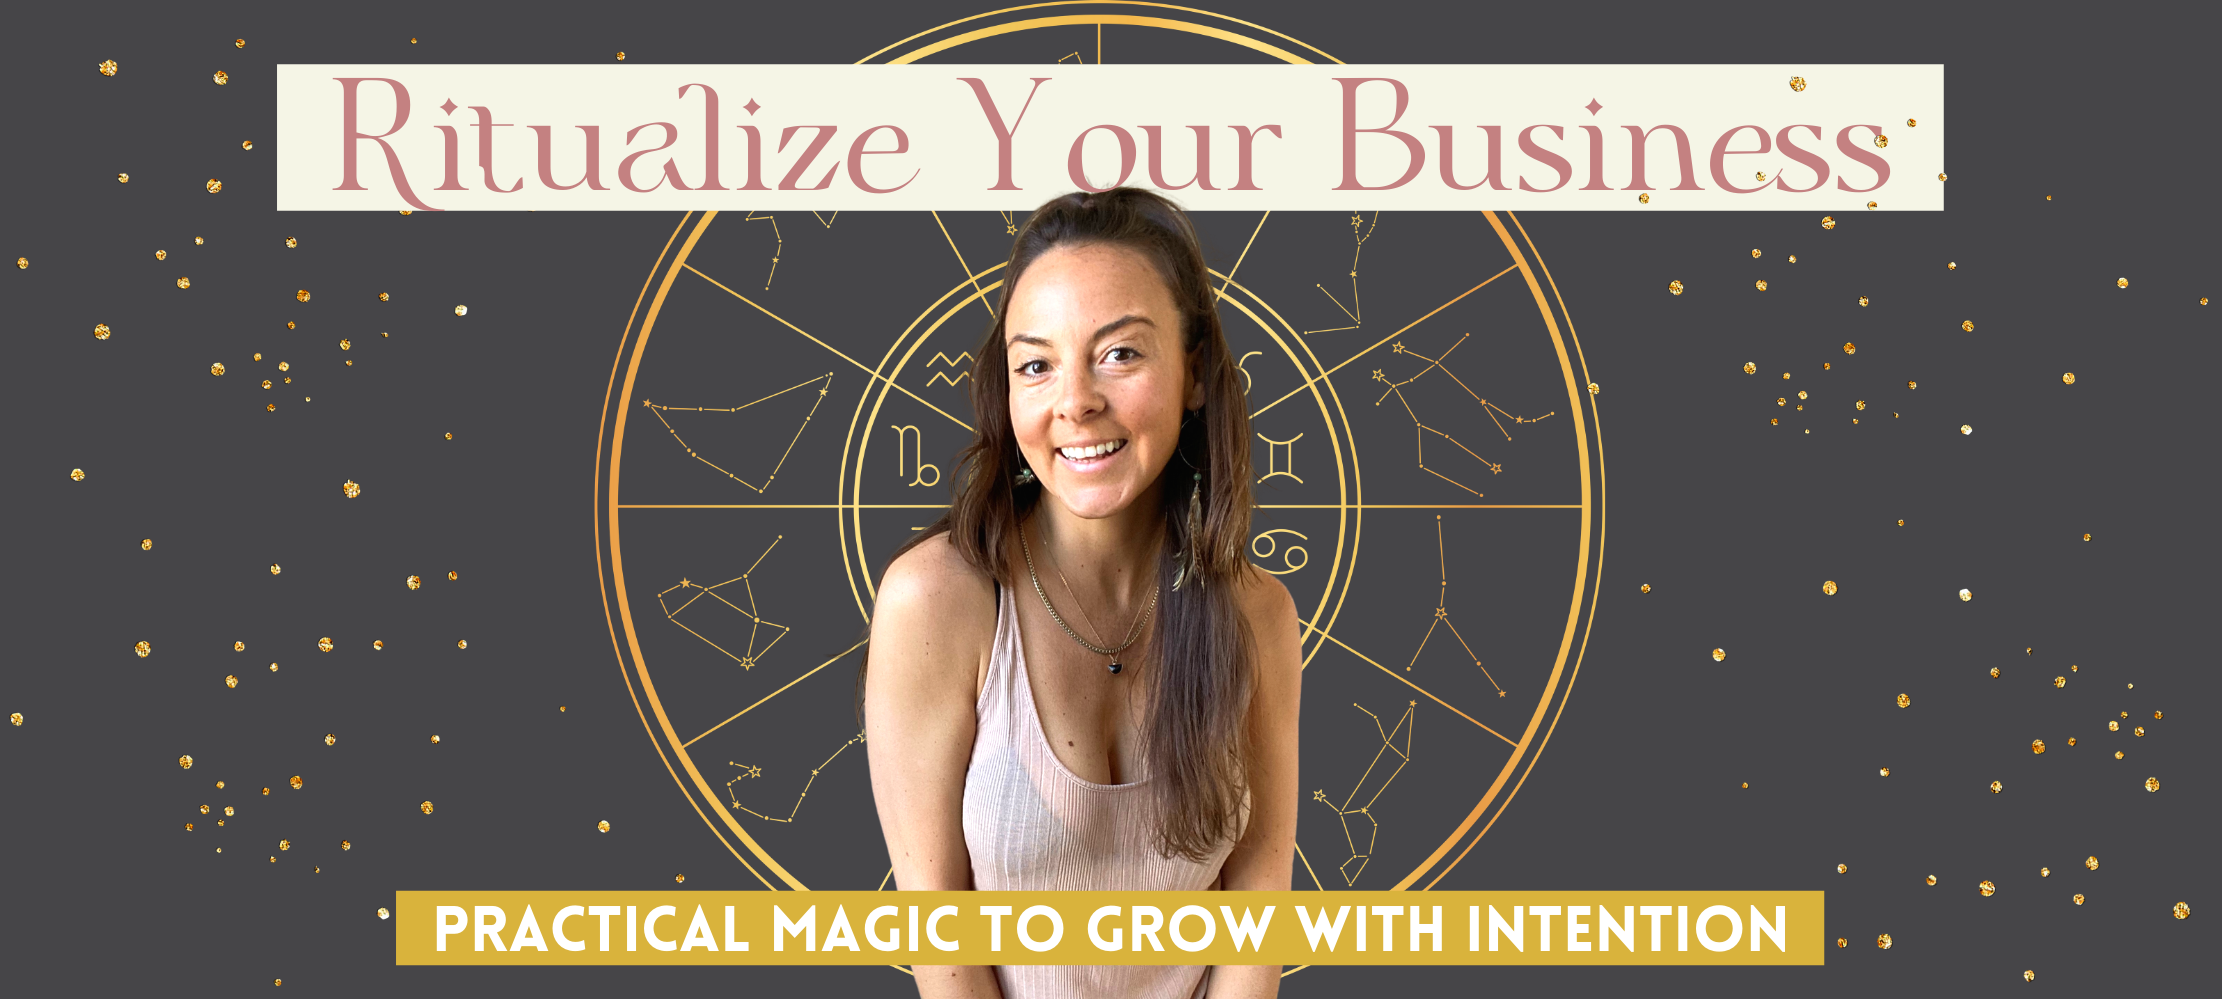 ritualize your business - conscious business